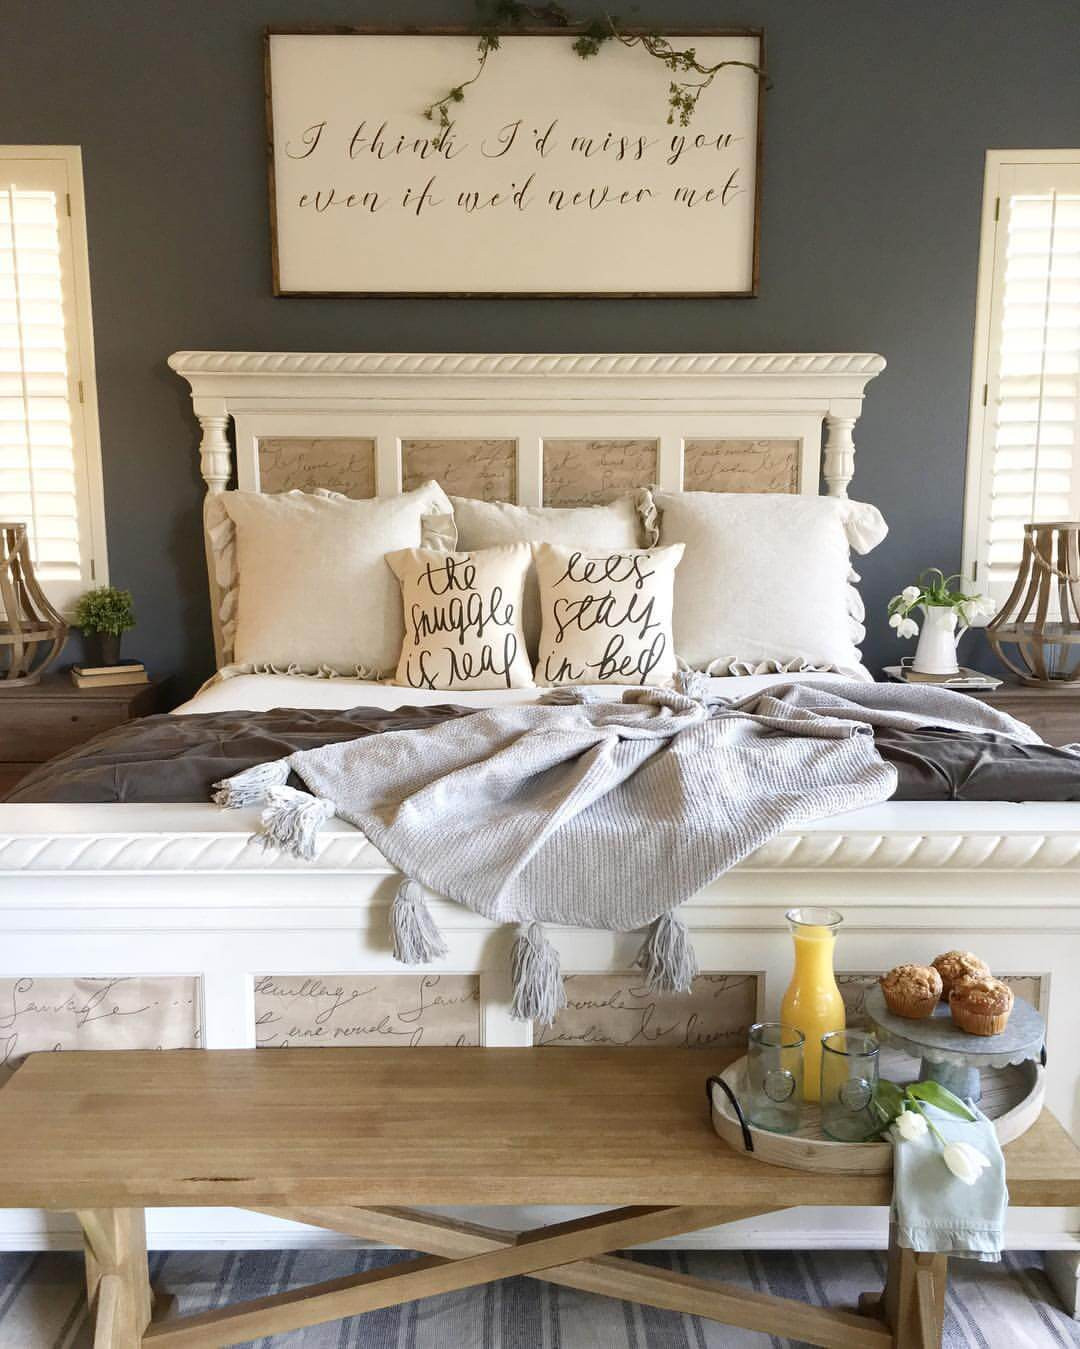 Best ideas about Farmhouse Bedroom Decor . Save or Pin 39 Best Farmhouse Bedroom Design and Decor Ideas for 2017 Now.